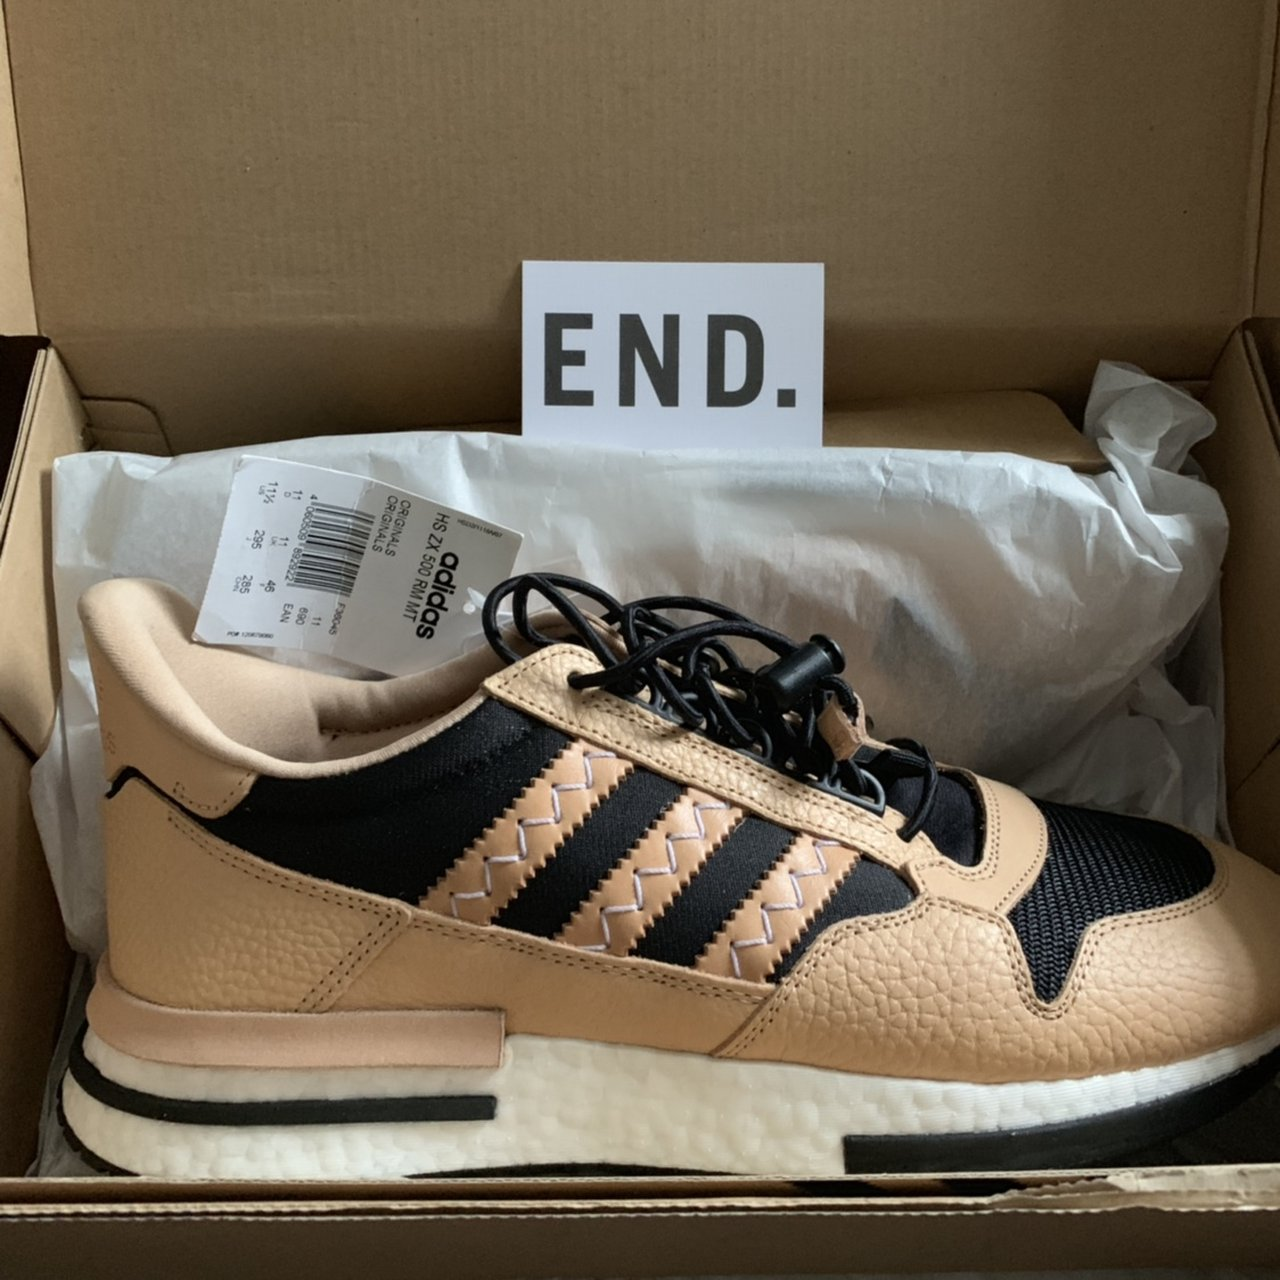 c9ae537be7bf Adidas ZX500 RM x Hender Scheme Brand new with box UK SIZE - Depop